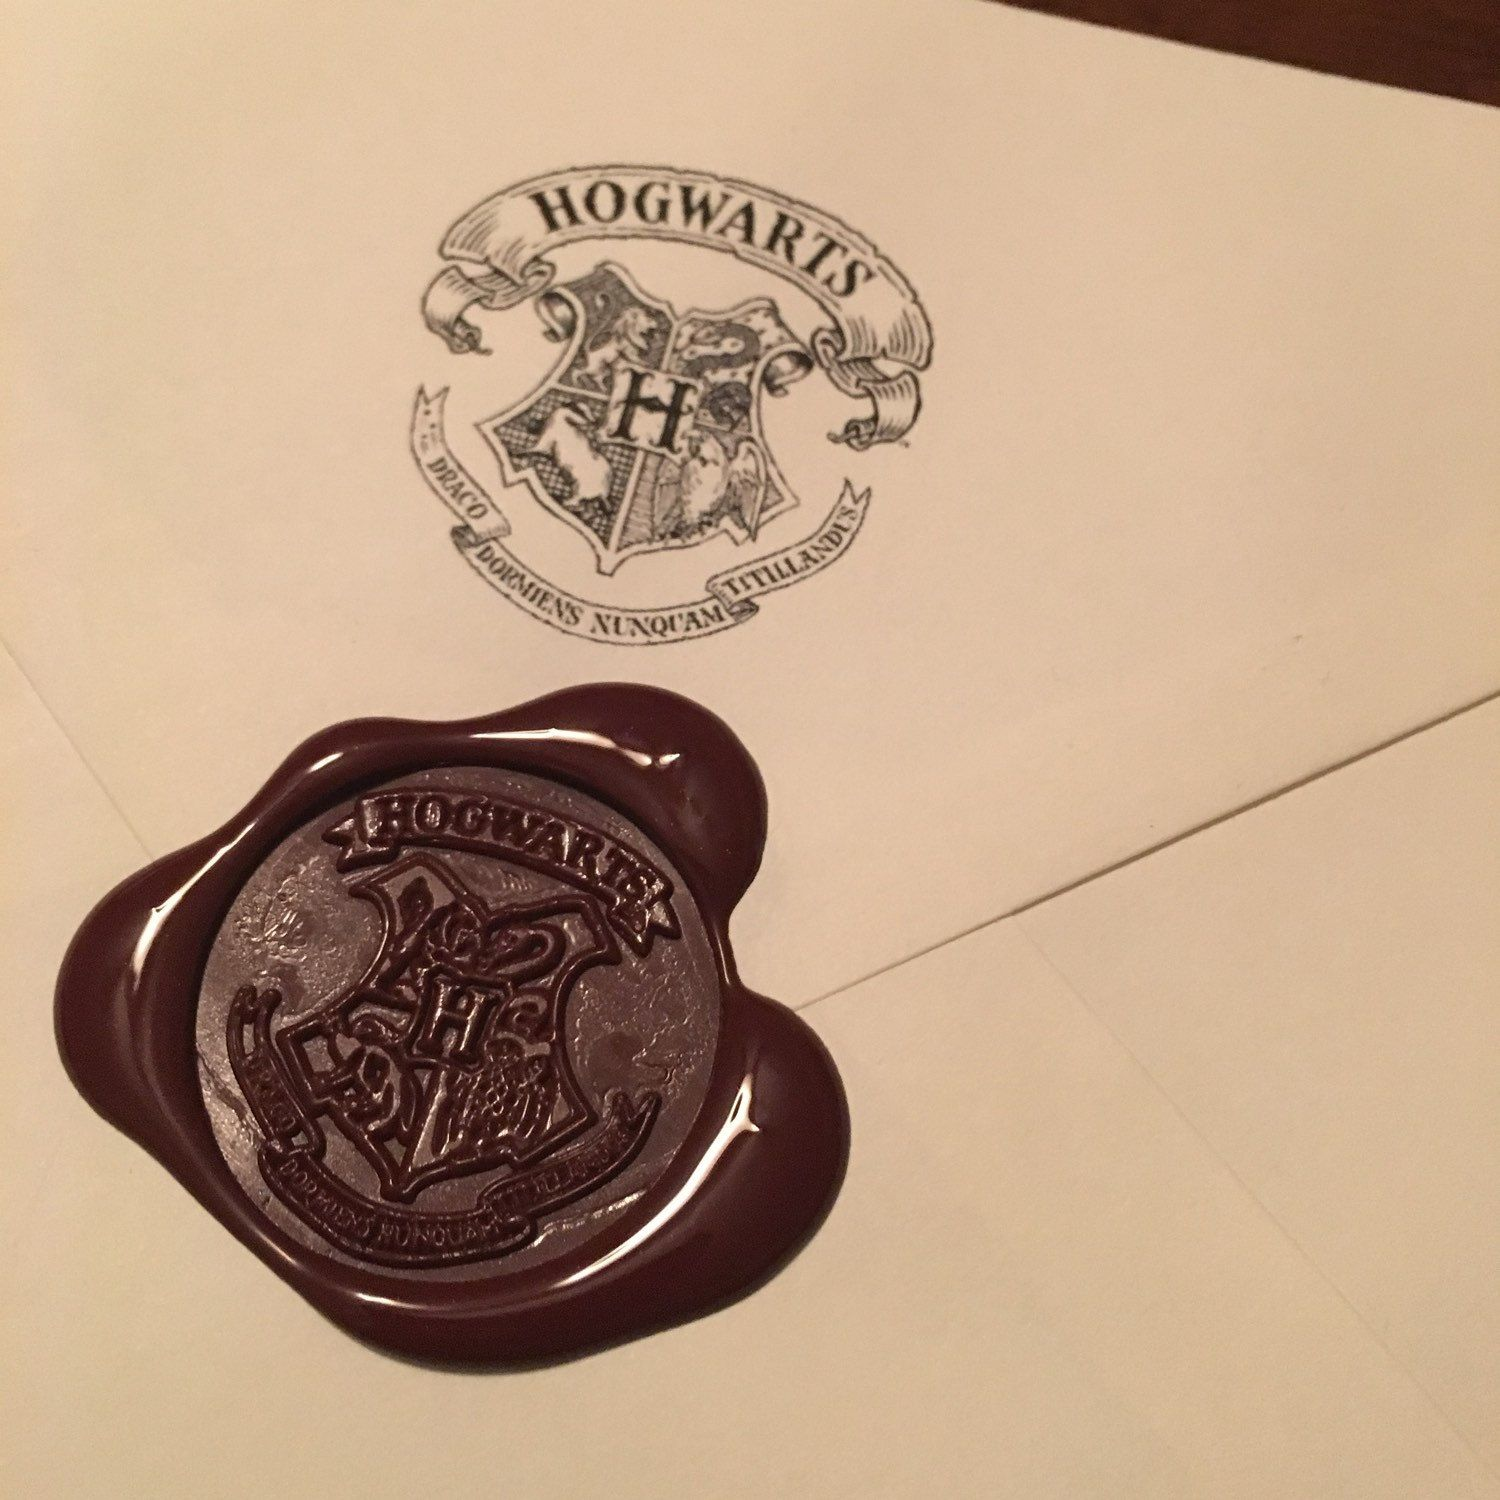 just listed my version of the hogwarts acceptance letter for printed